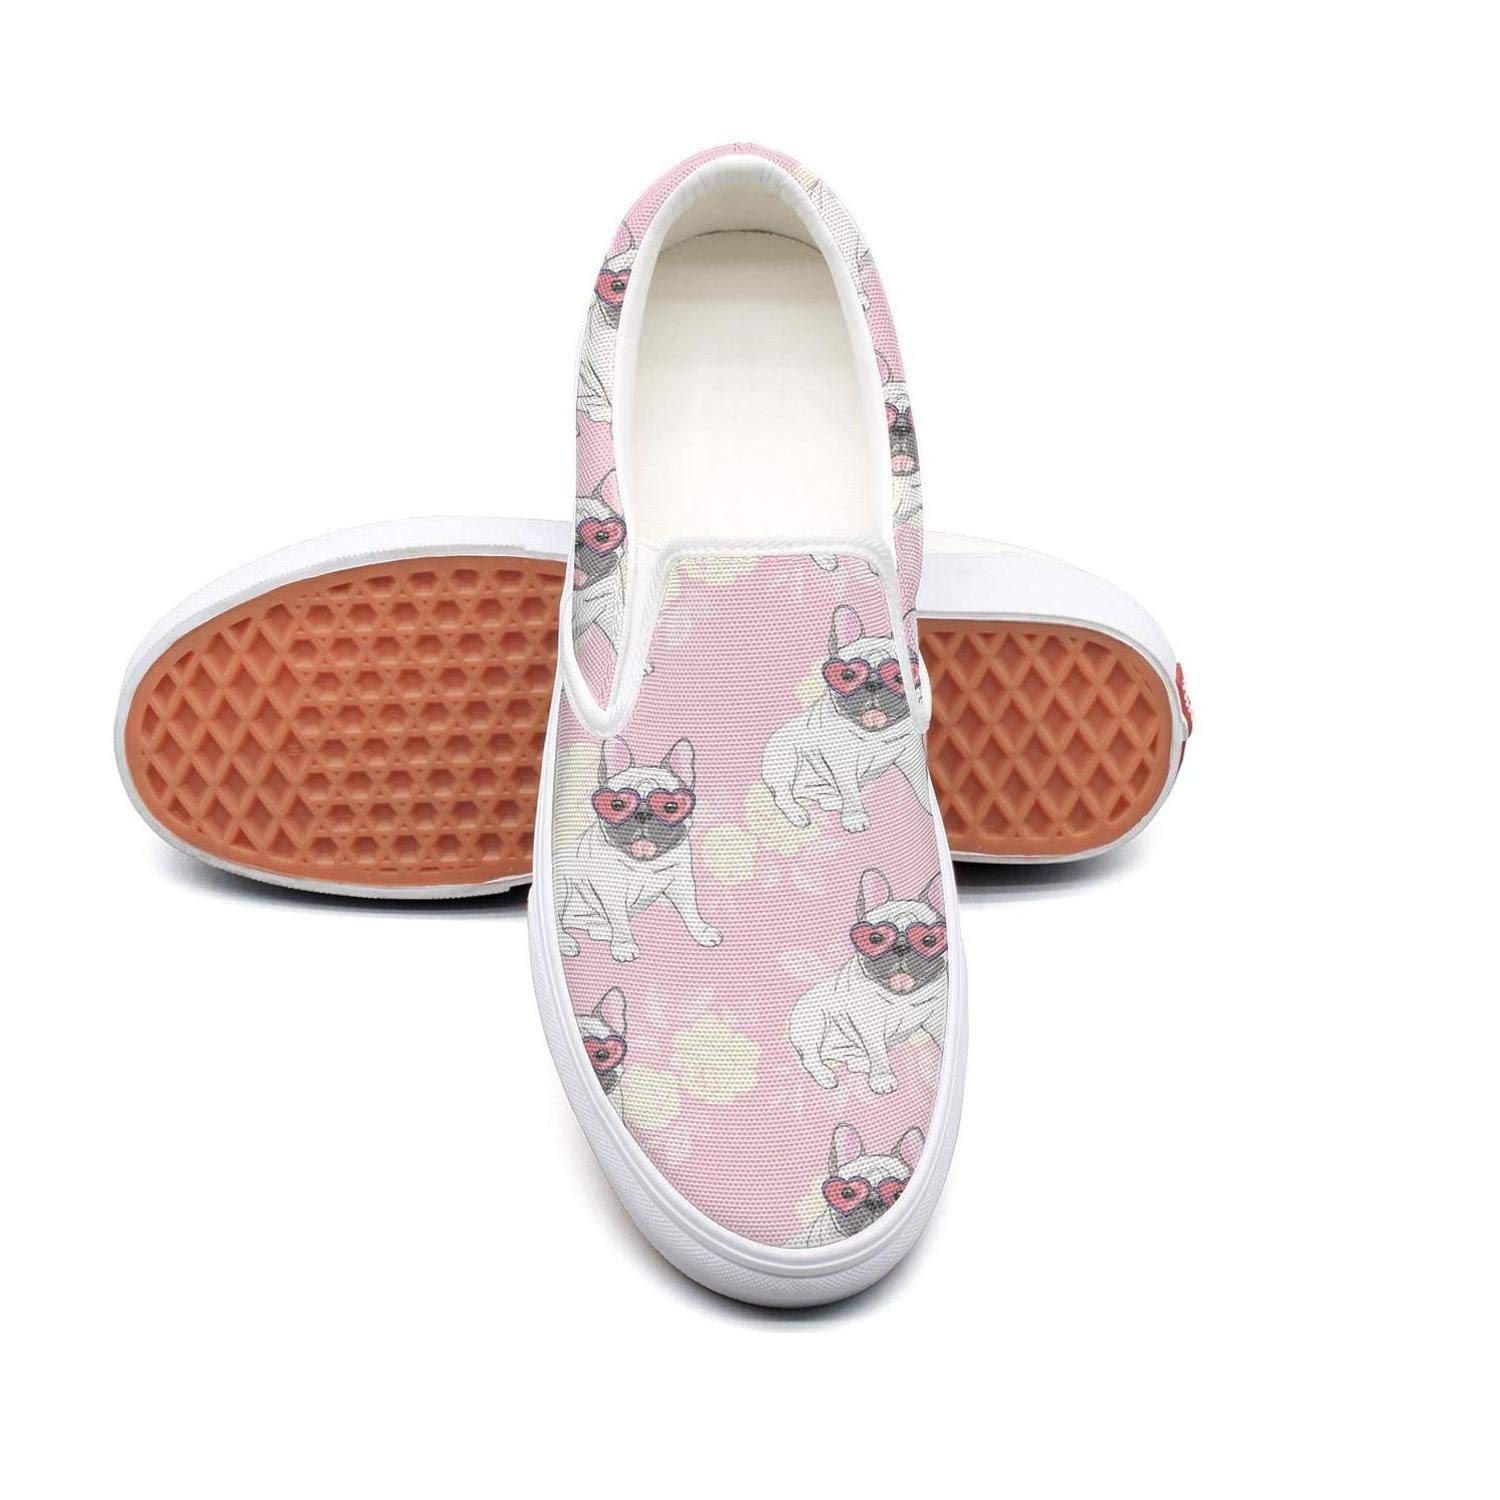 PDAQS Women French bulldog heart sunglasses pink loafers skate shoes low top